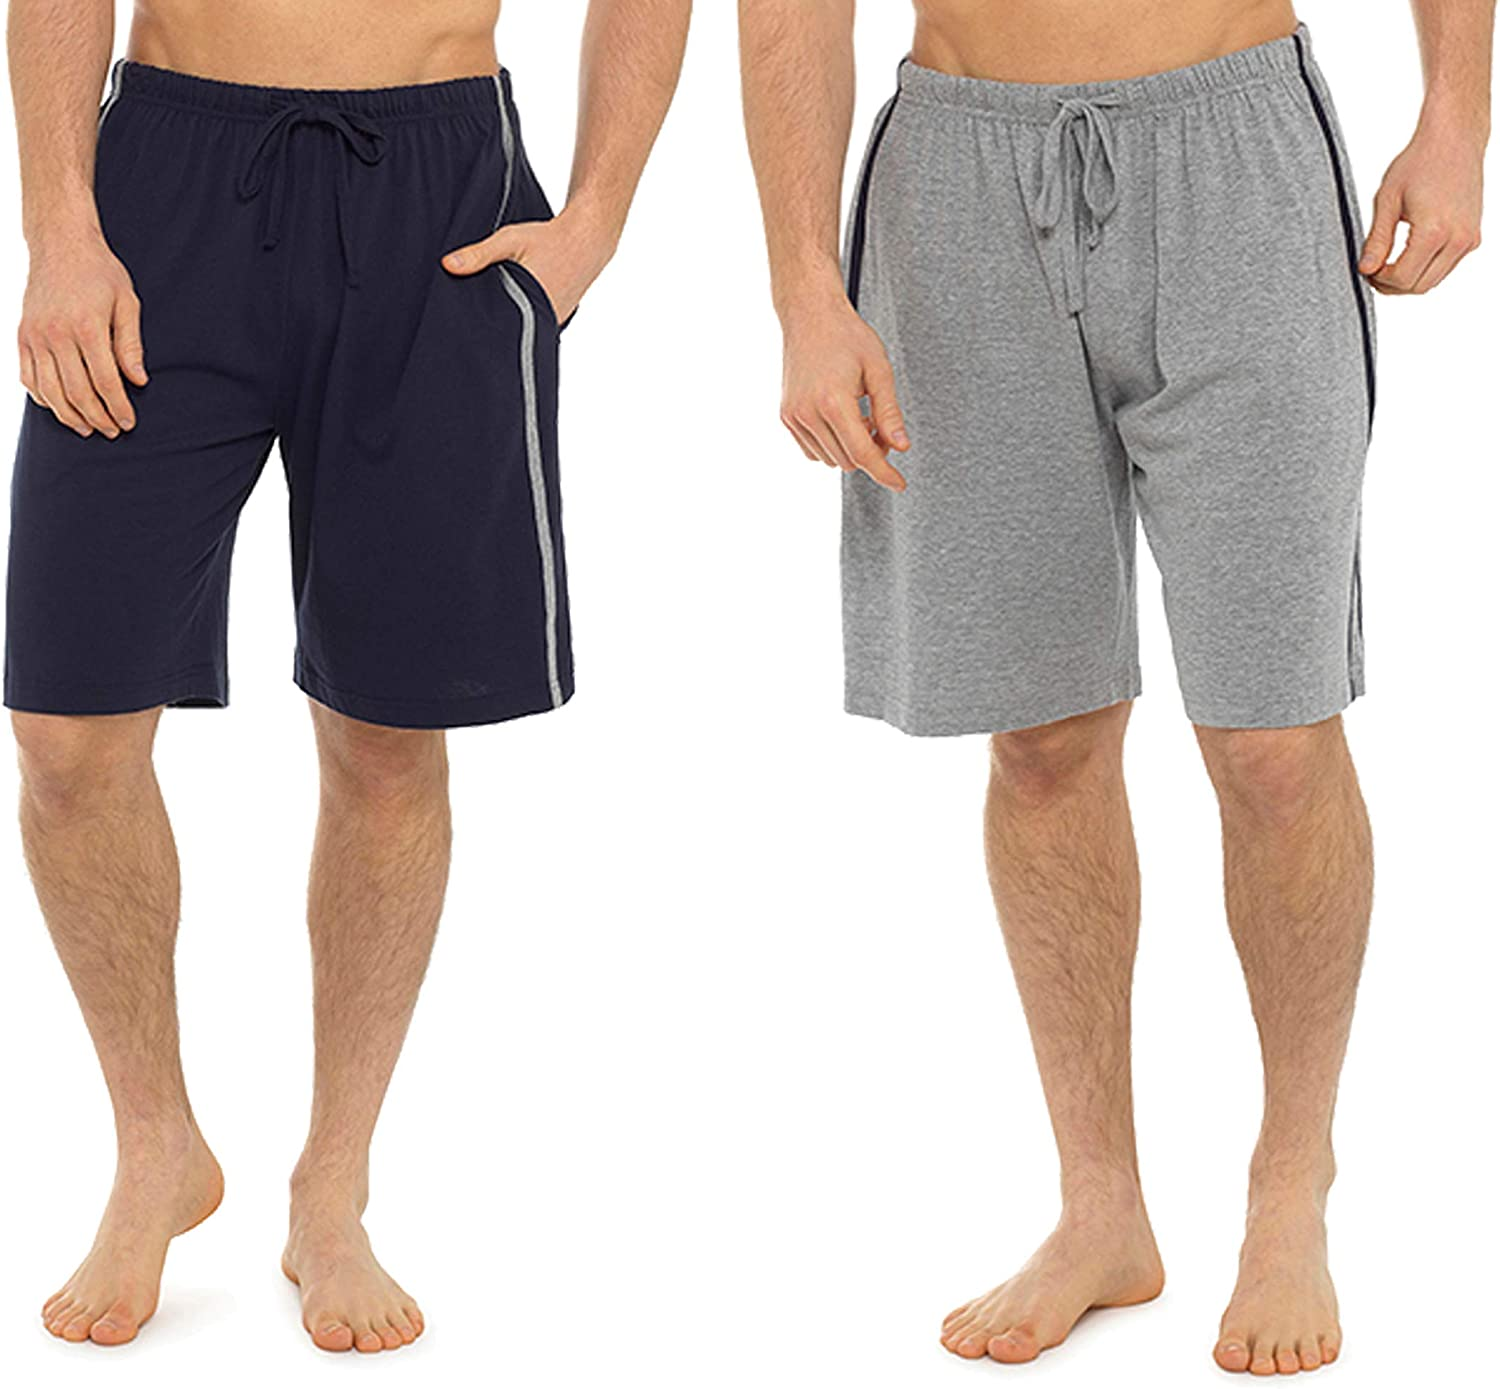 i-smalls Mens Pack of Two Contrast Side Stripes Jersey Lounge Shorts Pyjamas PJ Bottoms Nightwear with Eye Mask